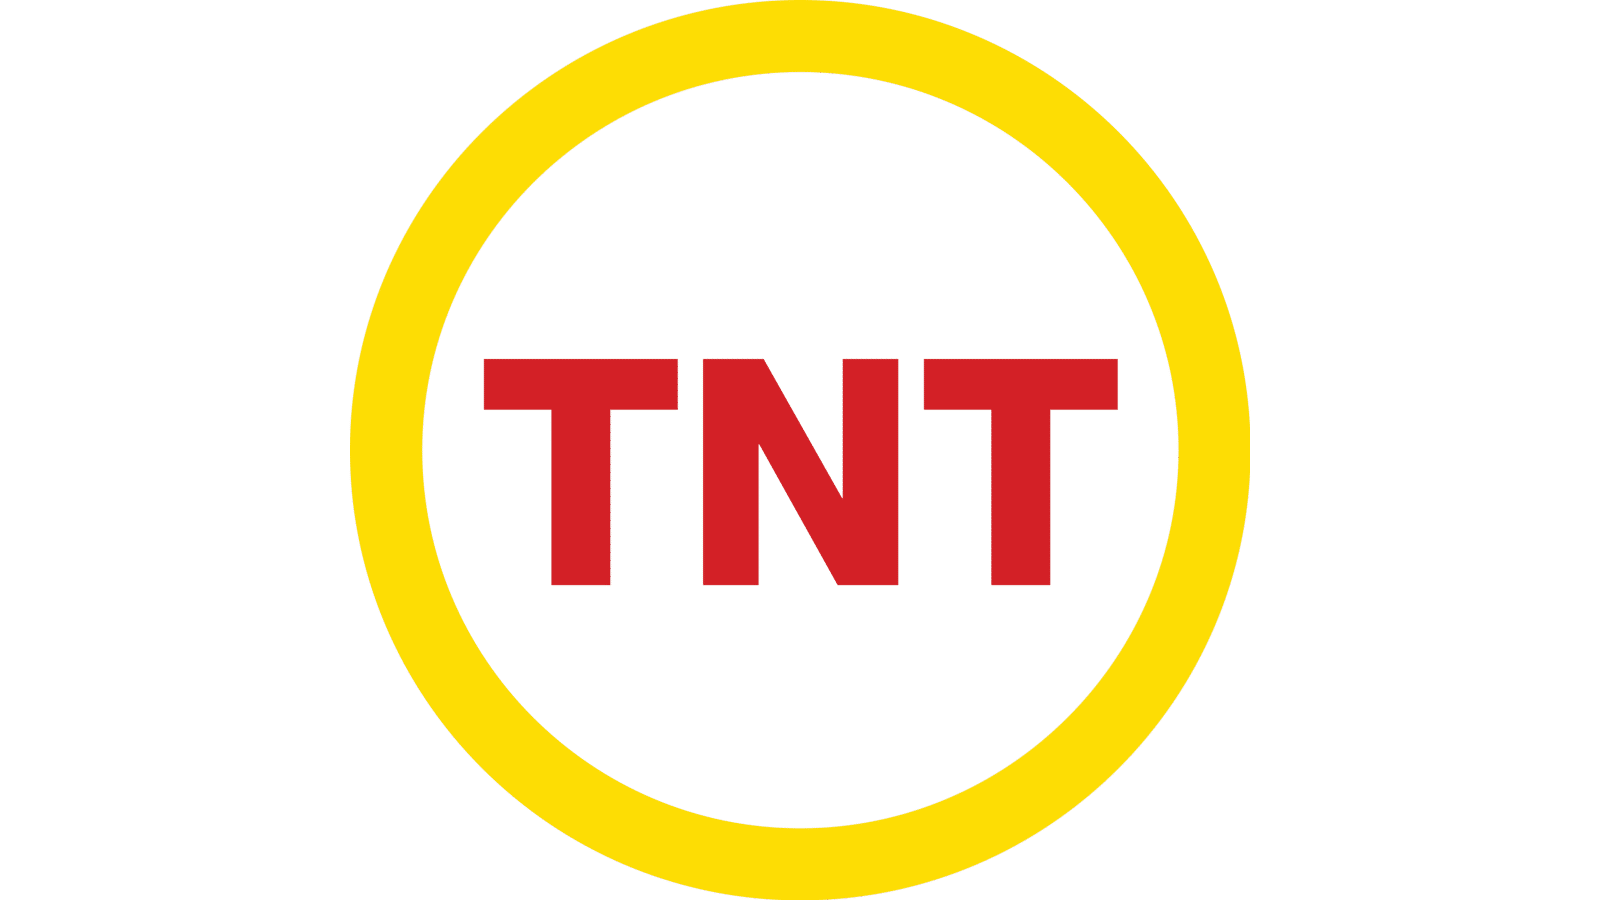 How to Watch TNT Without Cable